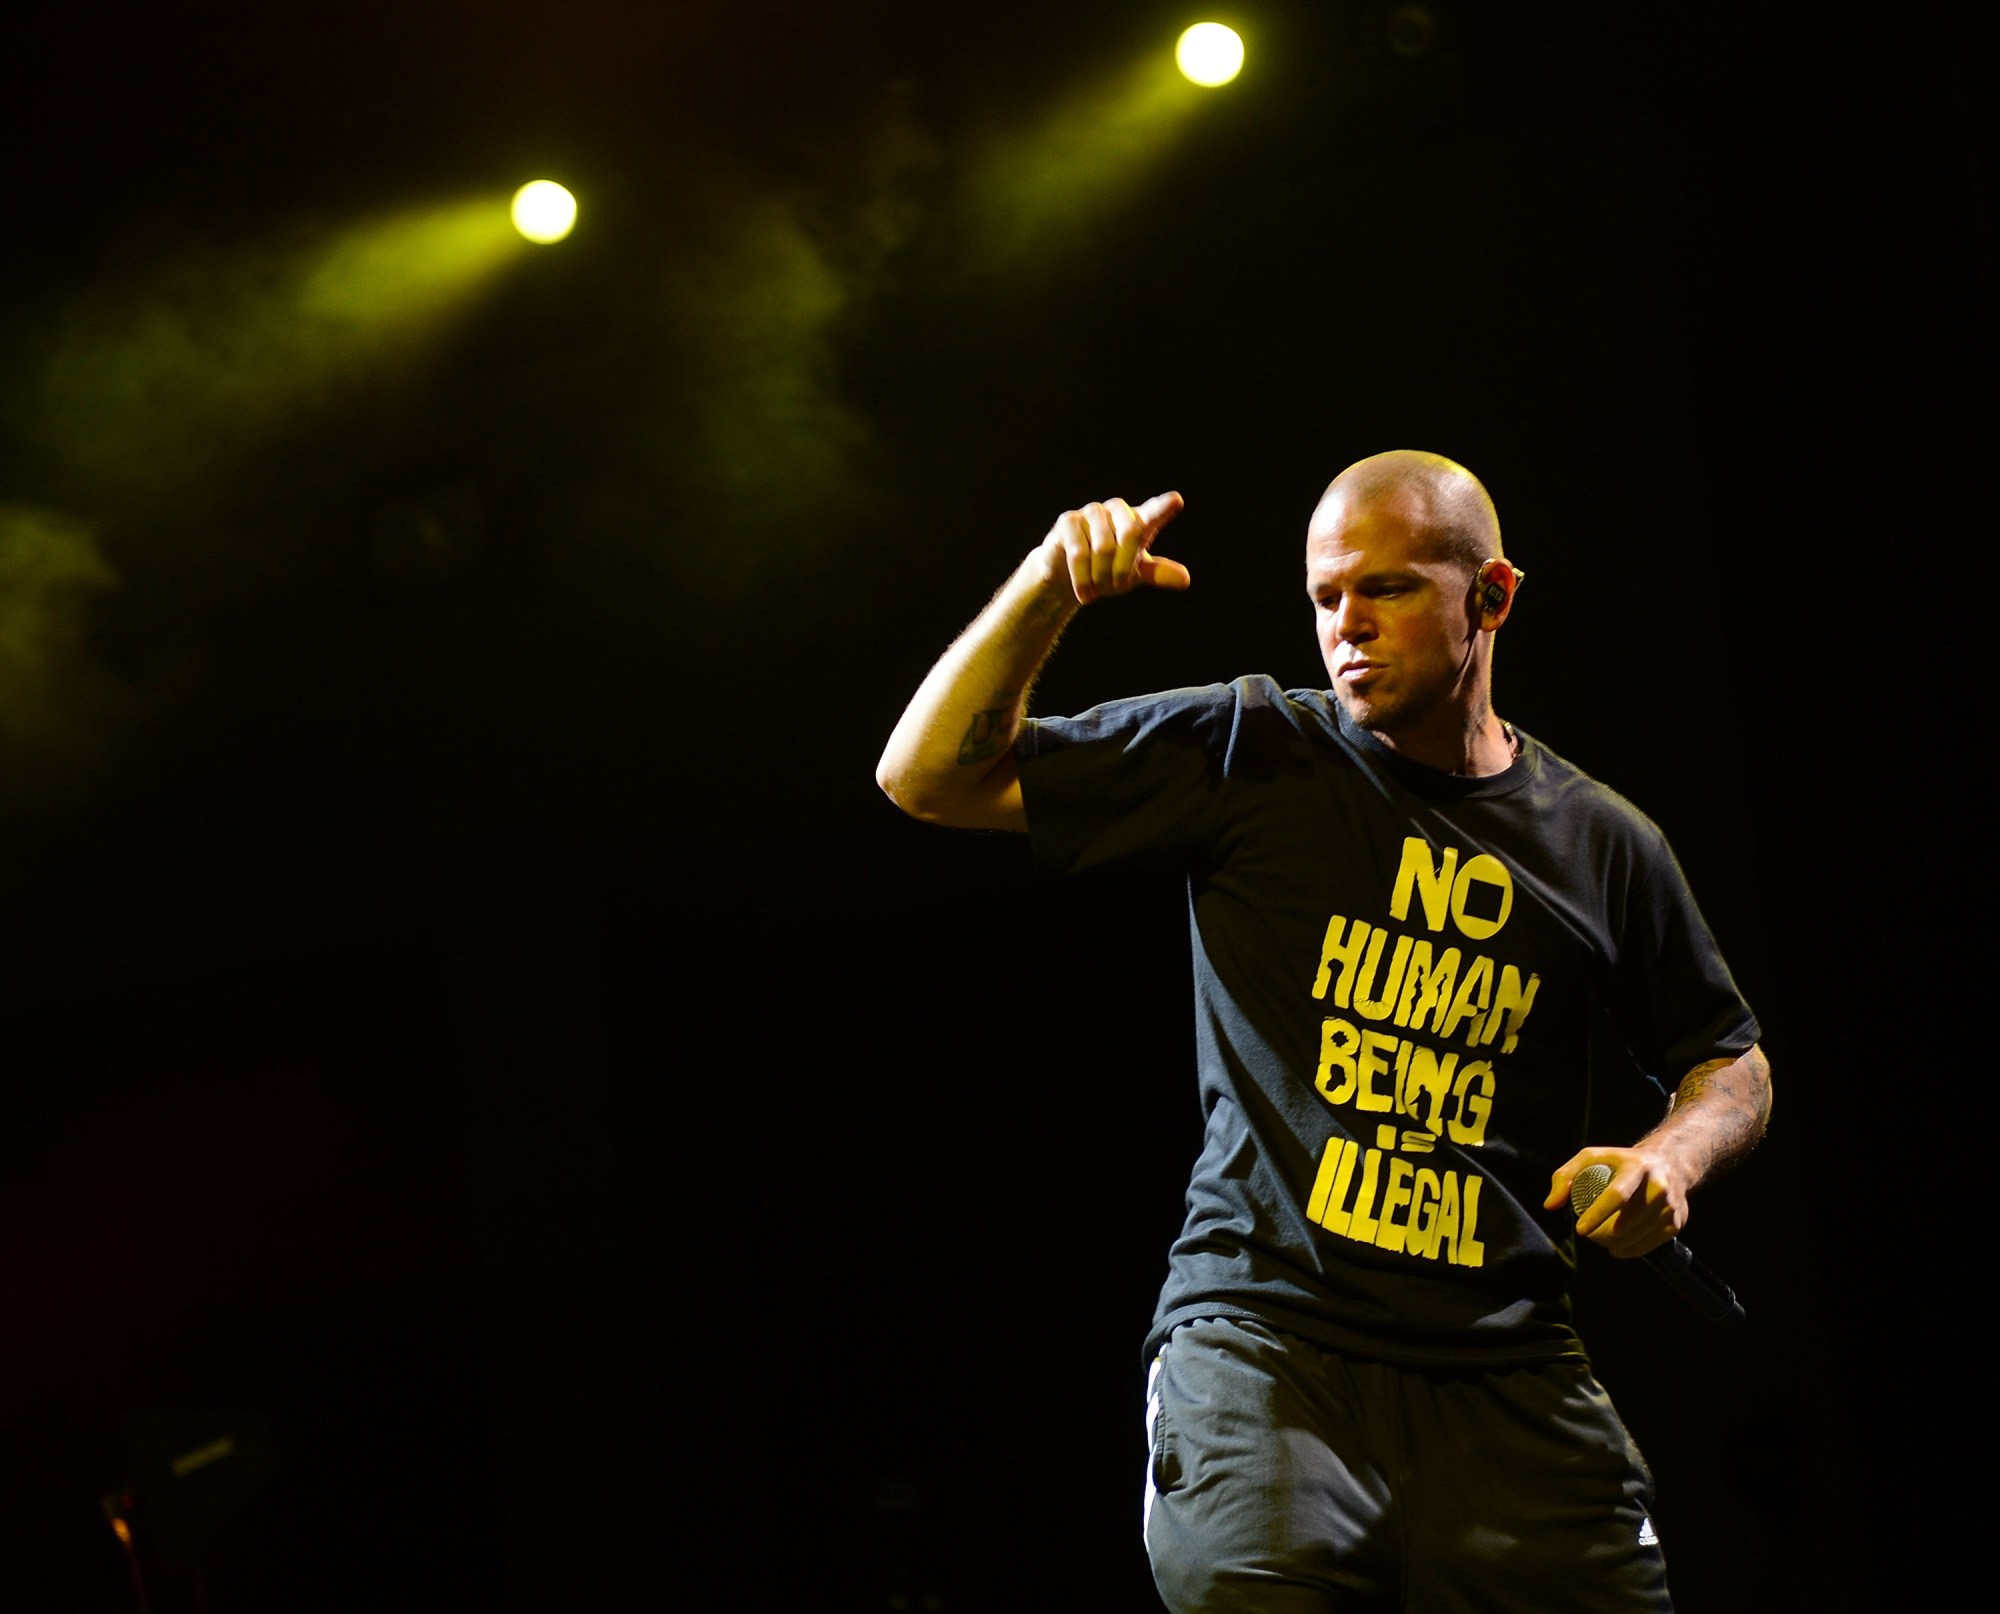 NEW YORK, NY - JULY 13:  René Pérez Joglar of the band Calle 13 performs at the 2012 Celebrate Brooklyn festival at Prospect Park Bandshell on July 13, 2012 in New York City.  (Photo by Jason Kempin/Getty Images)